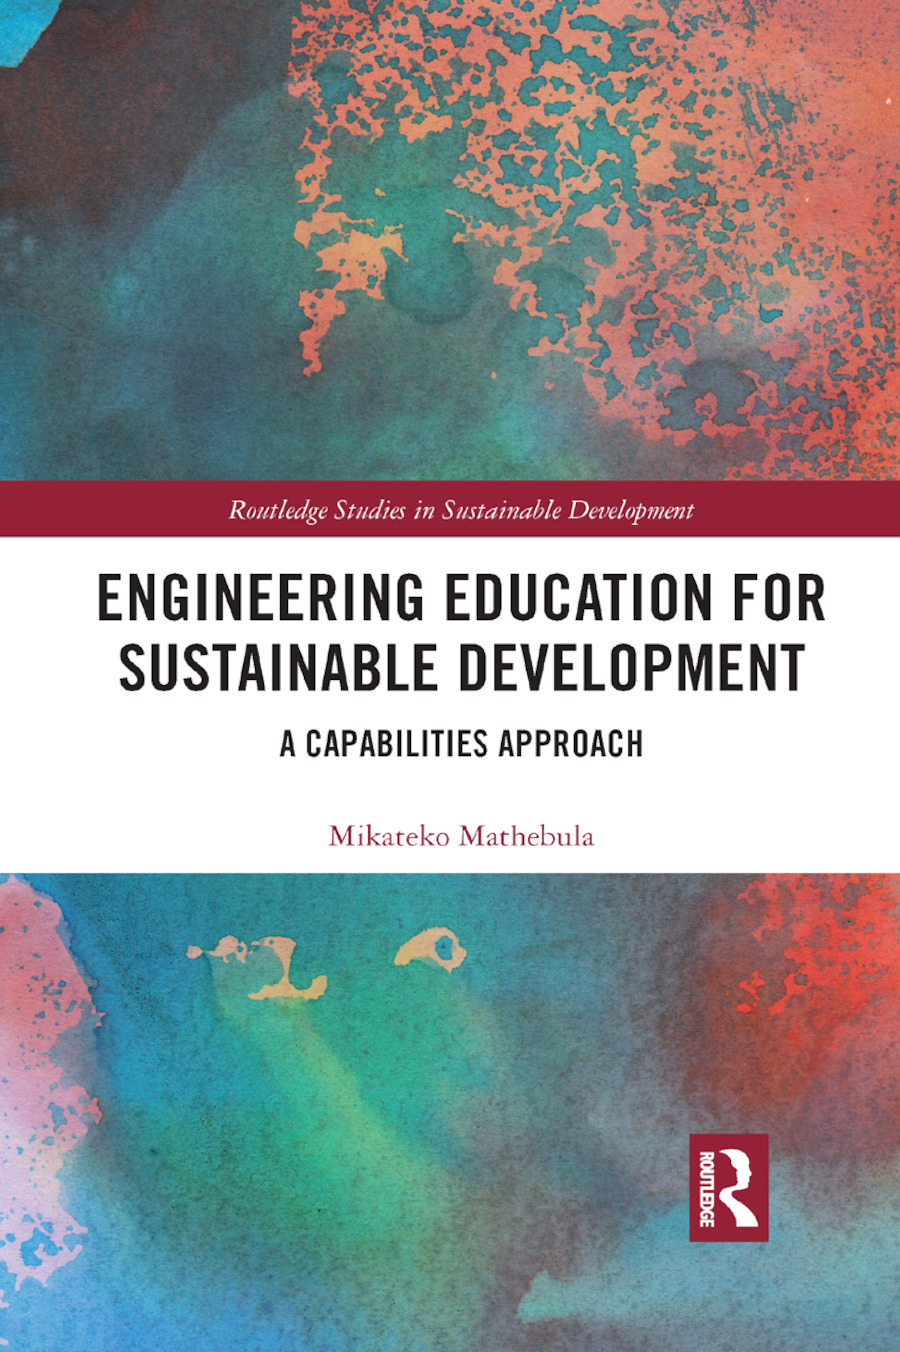 Engineering Education for Sustainable Development: A Capabilities Approach book cover